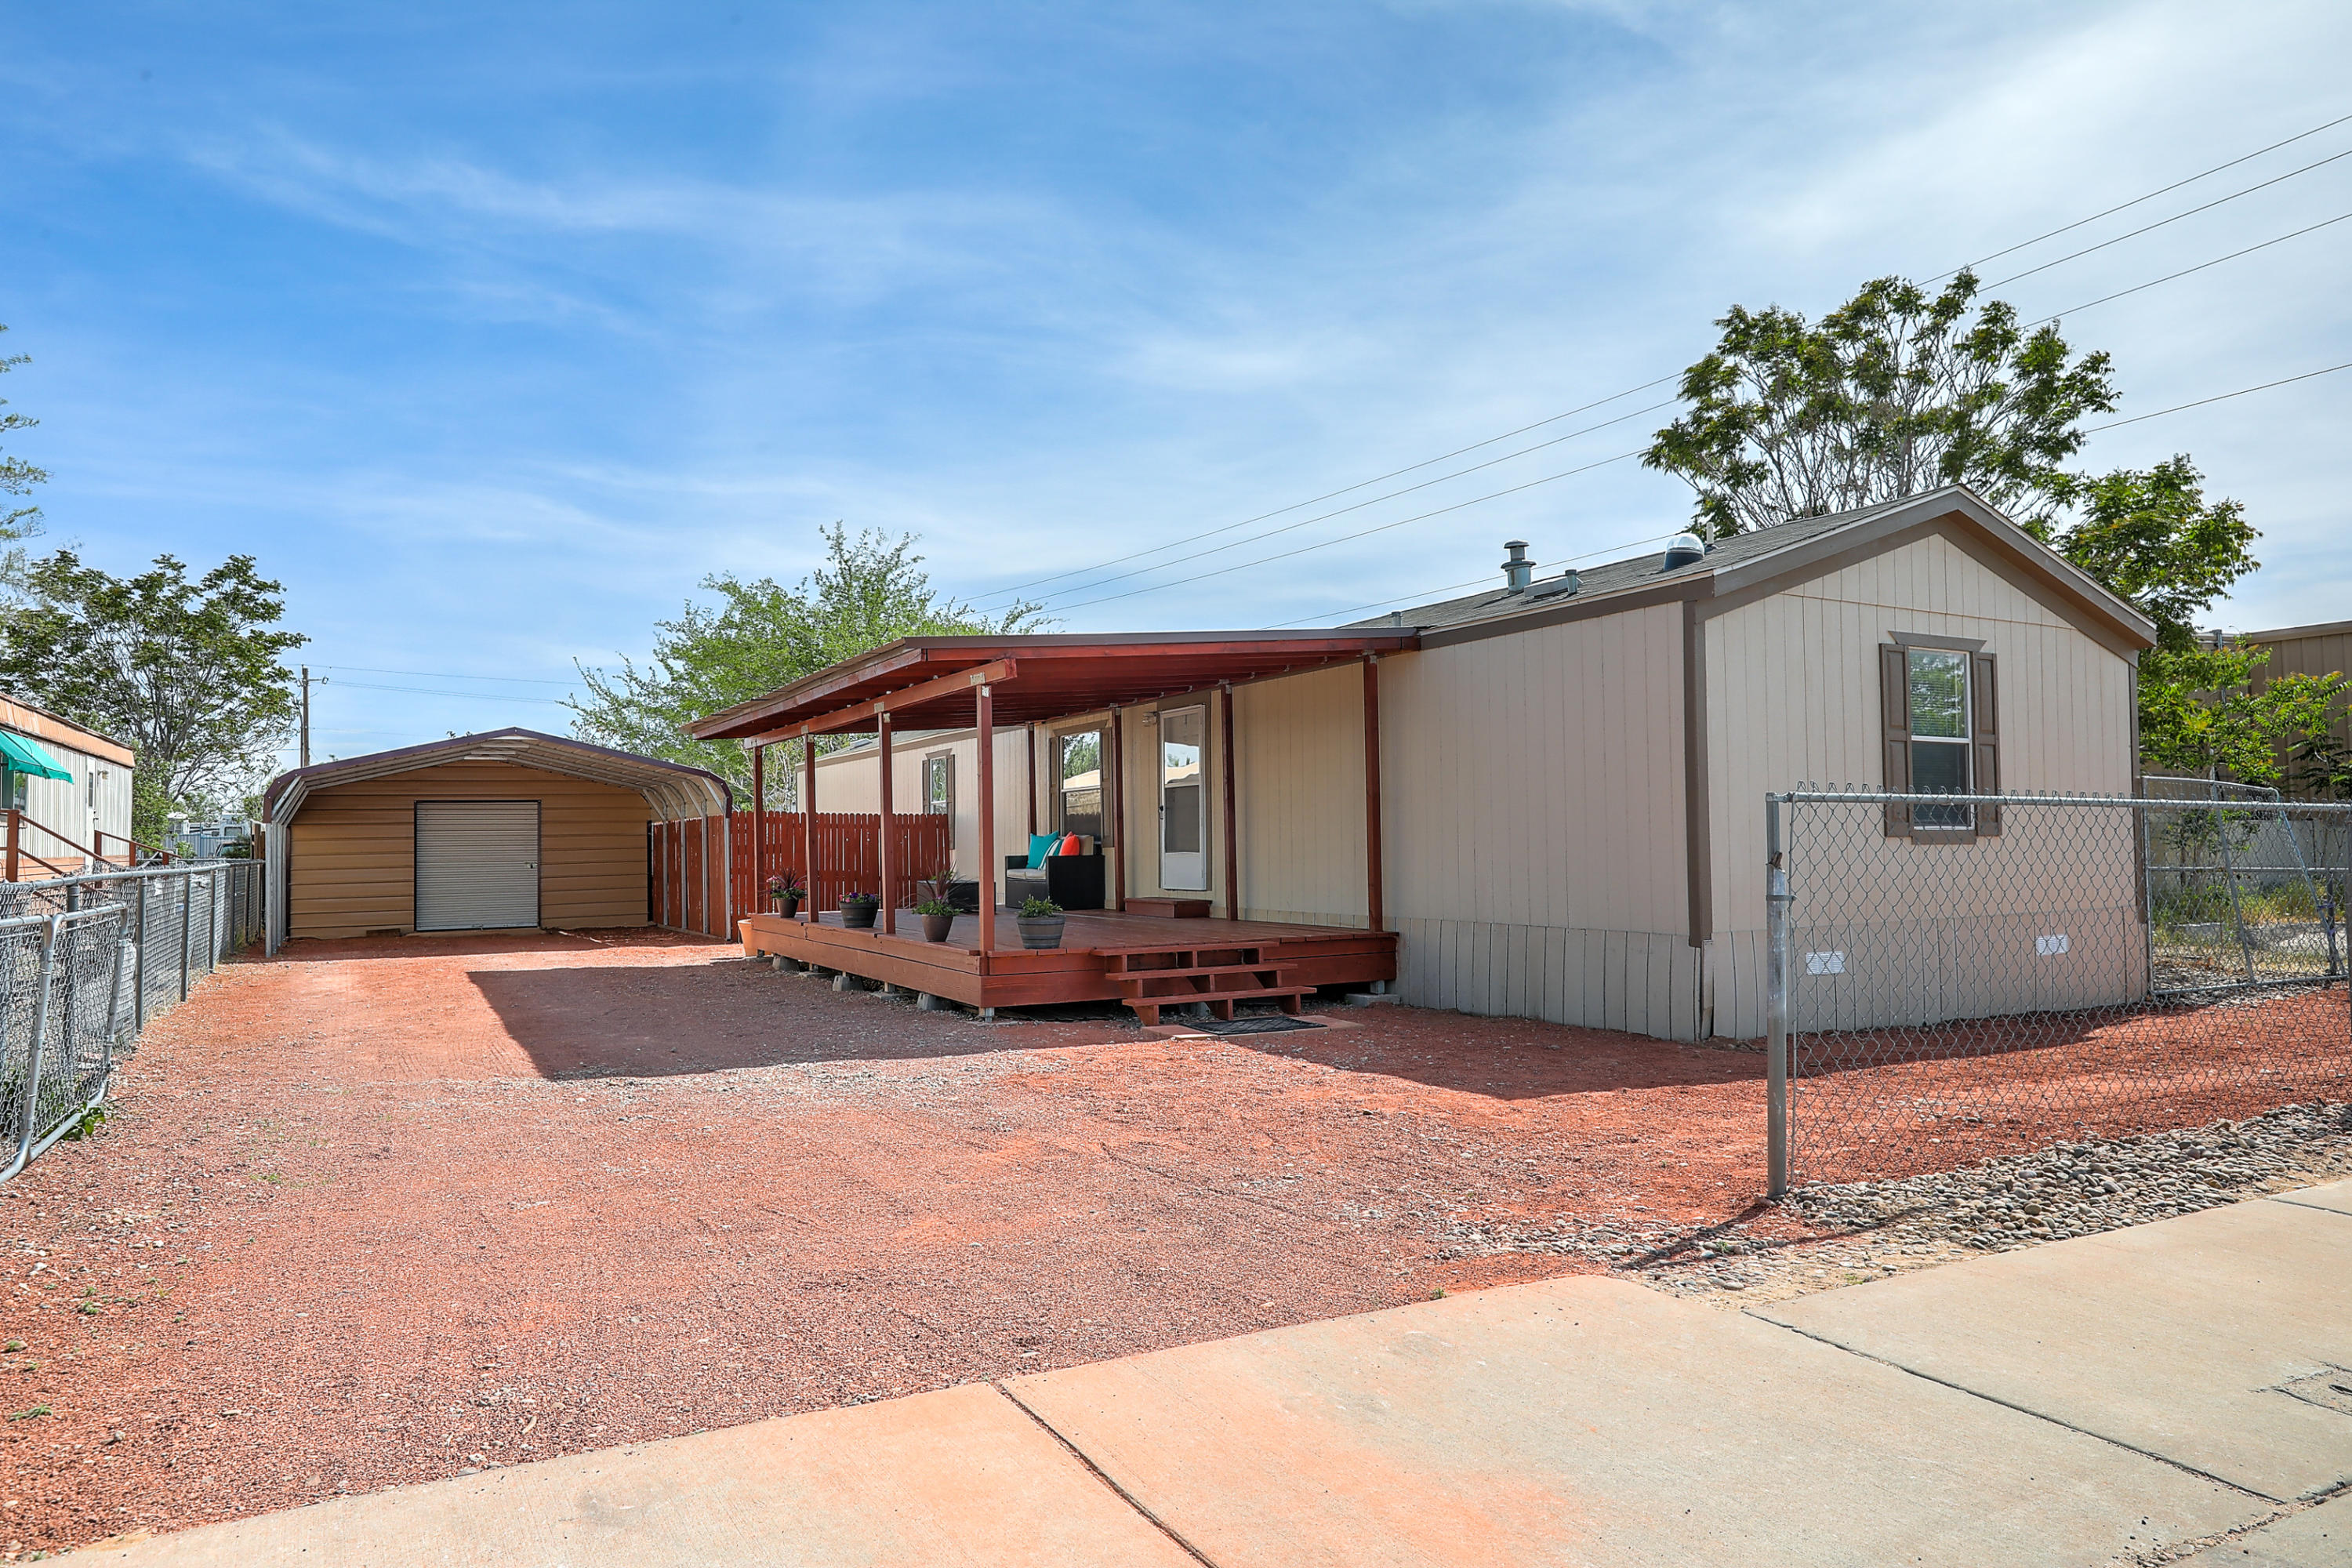 Great LOCATION Near Paseo/I-25! This trailer is a MUST SEE! It was constructed in 2011 and is a perfect size at 1300sq.ft. 3 bed w/2 full baths. As you pull in you'll notice the Beautiful Covered Patio that creates a Cozy Outdoor Space, perfect spot Entertaining & Grilling.  Front Entry Way leads to an Open Floor Plan with Living Room flowing into the Kitchen and Dining Room.  BIG Master Bedroom w/ Large Closet, Master Bath has Separate Sinks, Shower and Garden Tub.  On the other side are 2 additional Bedrooms and Full Bathroom.  Has a nice sized carport for 2 cars and additional storage in backside of carport!  Located at the end of a Cul-de-Sac, perfect for entertaining! Setup an Appt. today! This ones Move-in Ready!